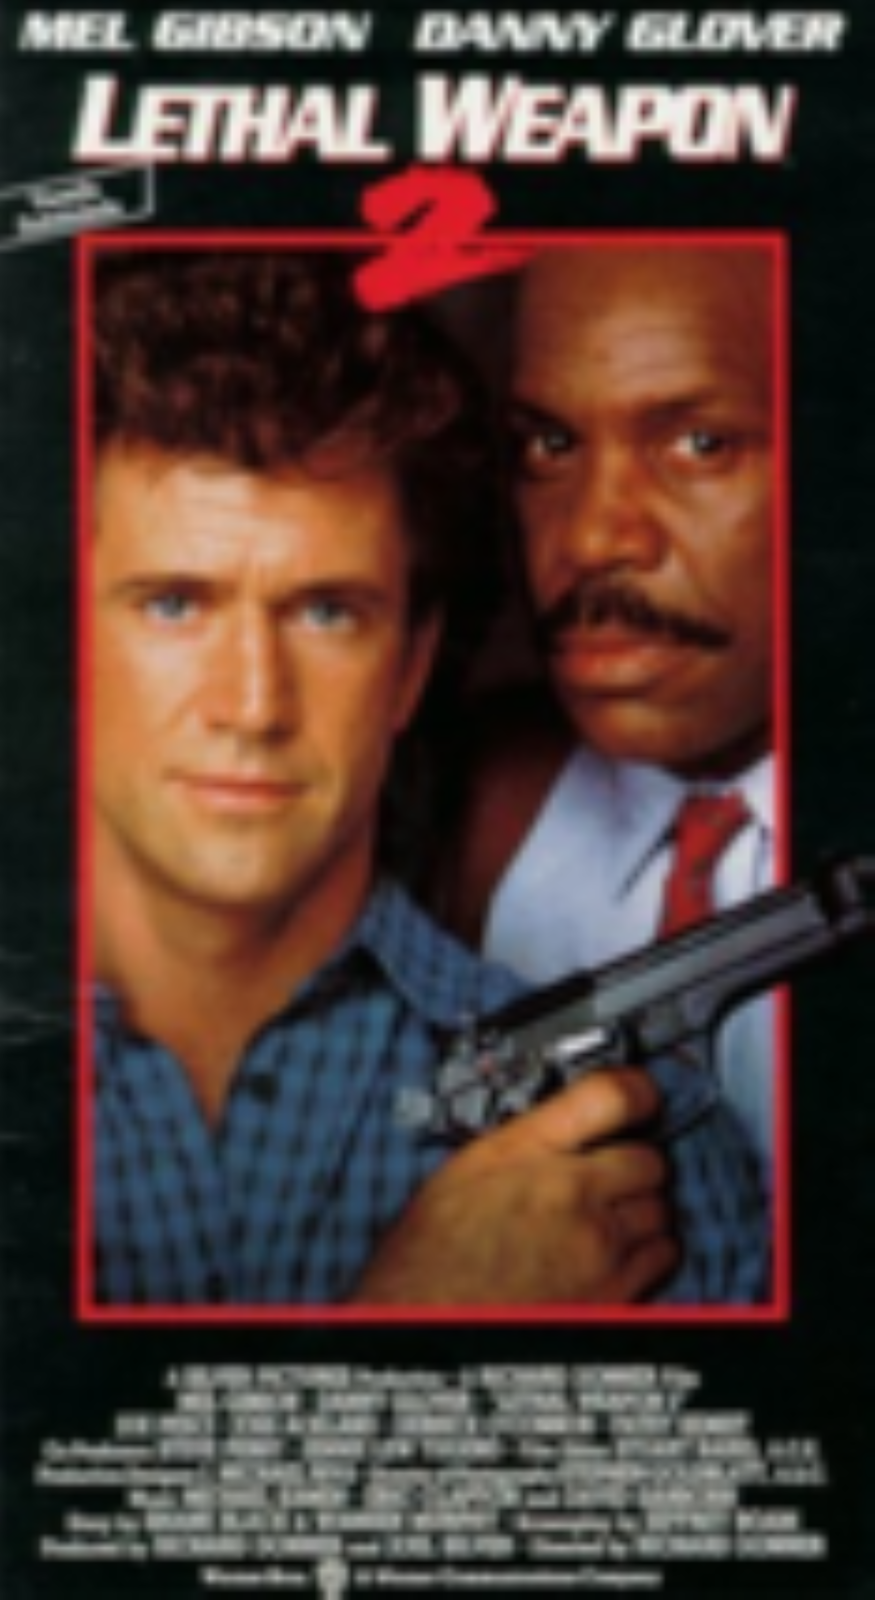 Lethal Weapon 2 Vhs